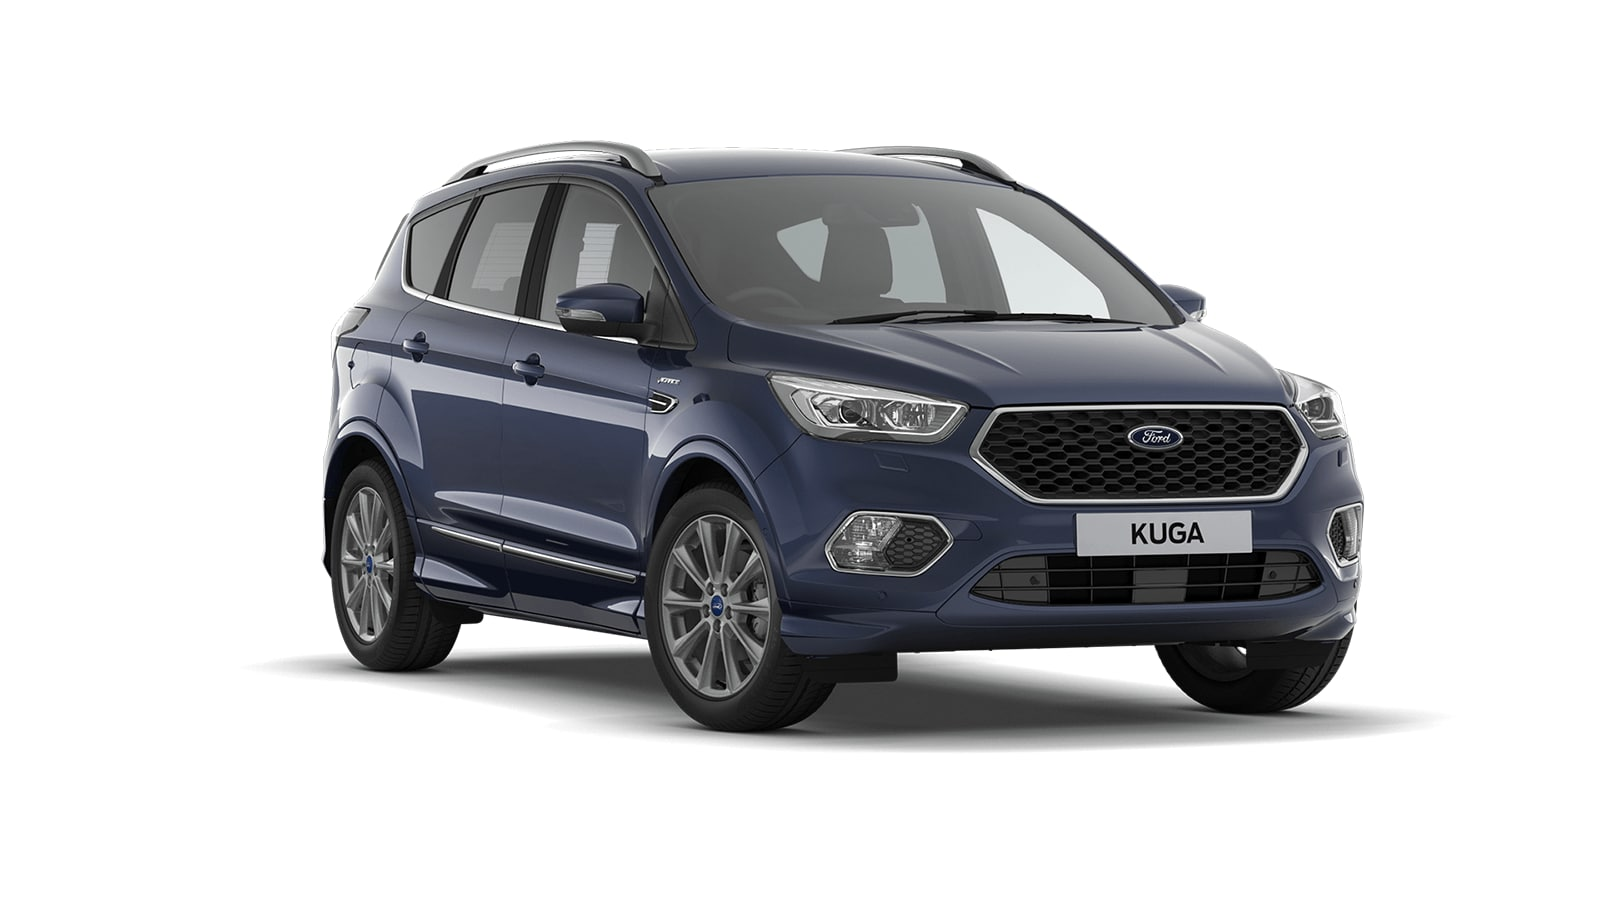 https://www.dealerinternet.co.uk/images/KUGA/2019.75/5%20Door/Vignale/BLUE-PANTHER.png